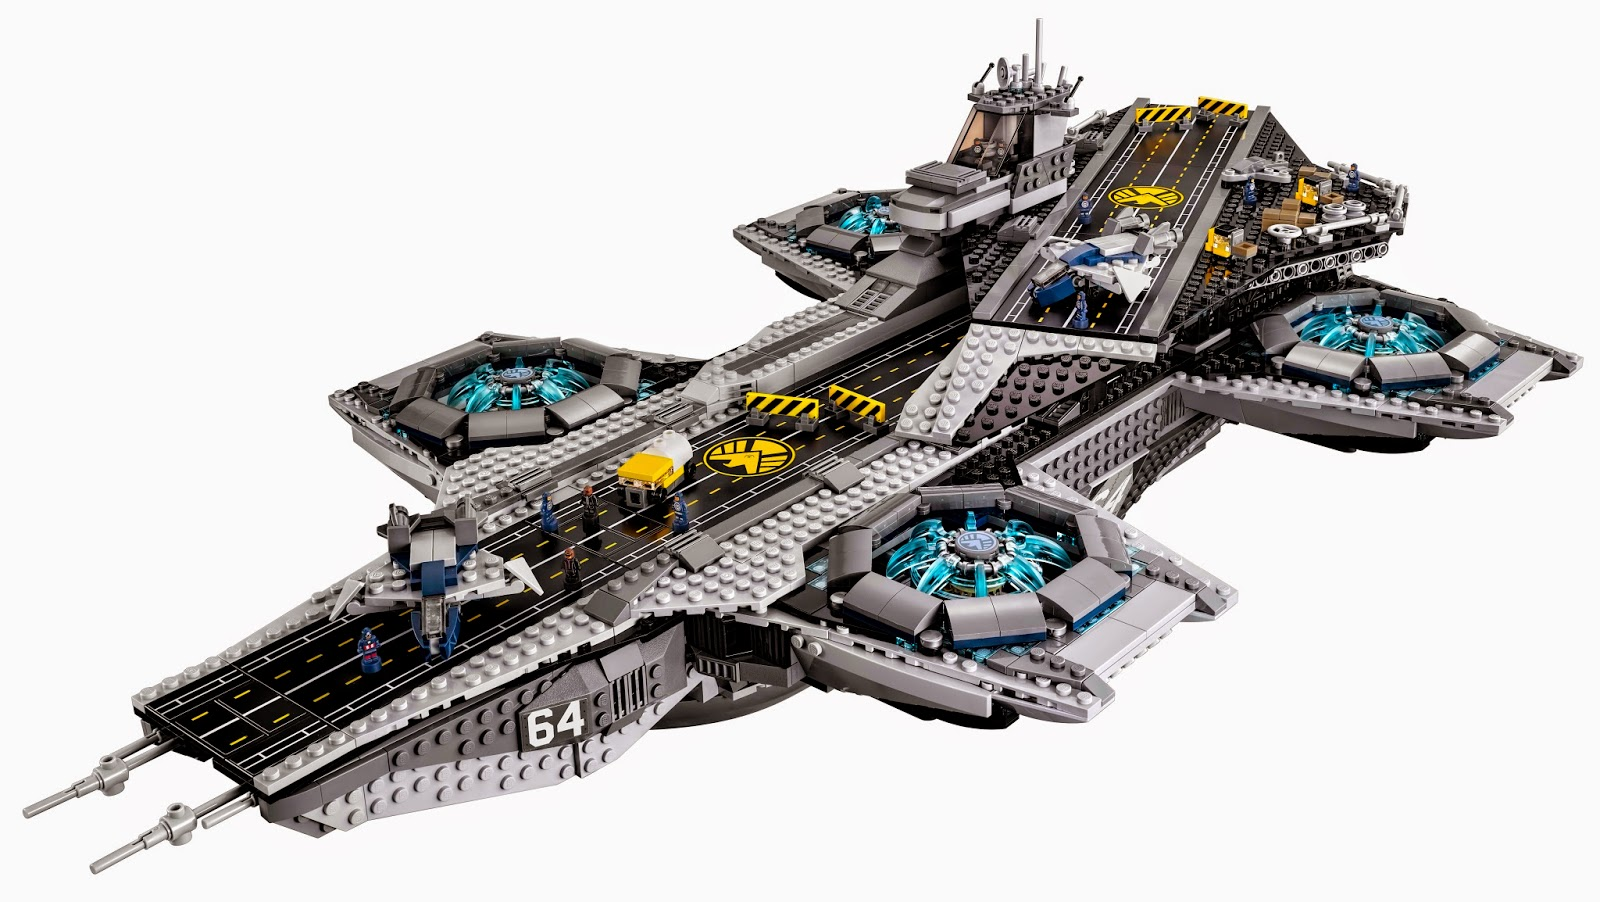 LEGO gosSIP: 300115 LEGO 76042 The SHIELD Helicarrier more ...